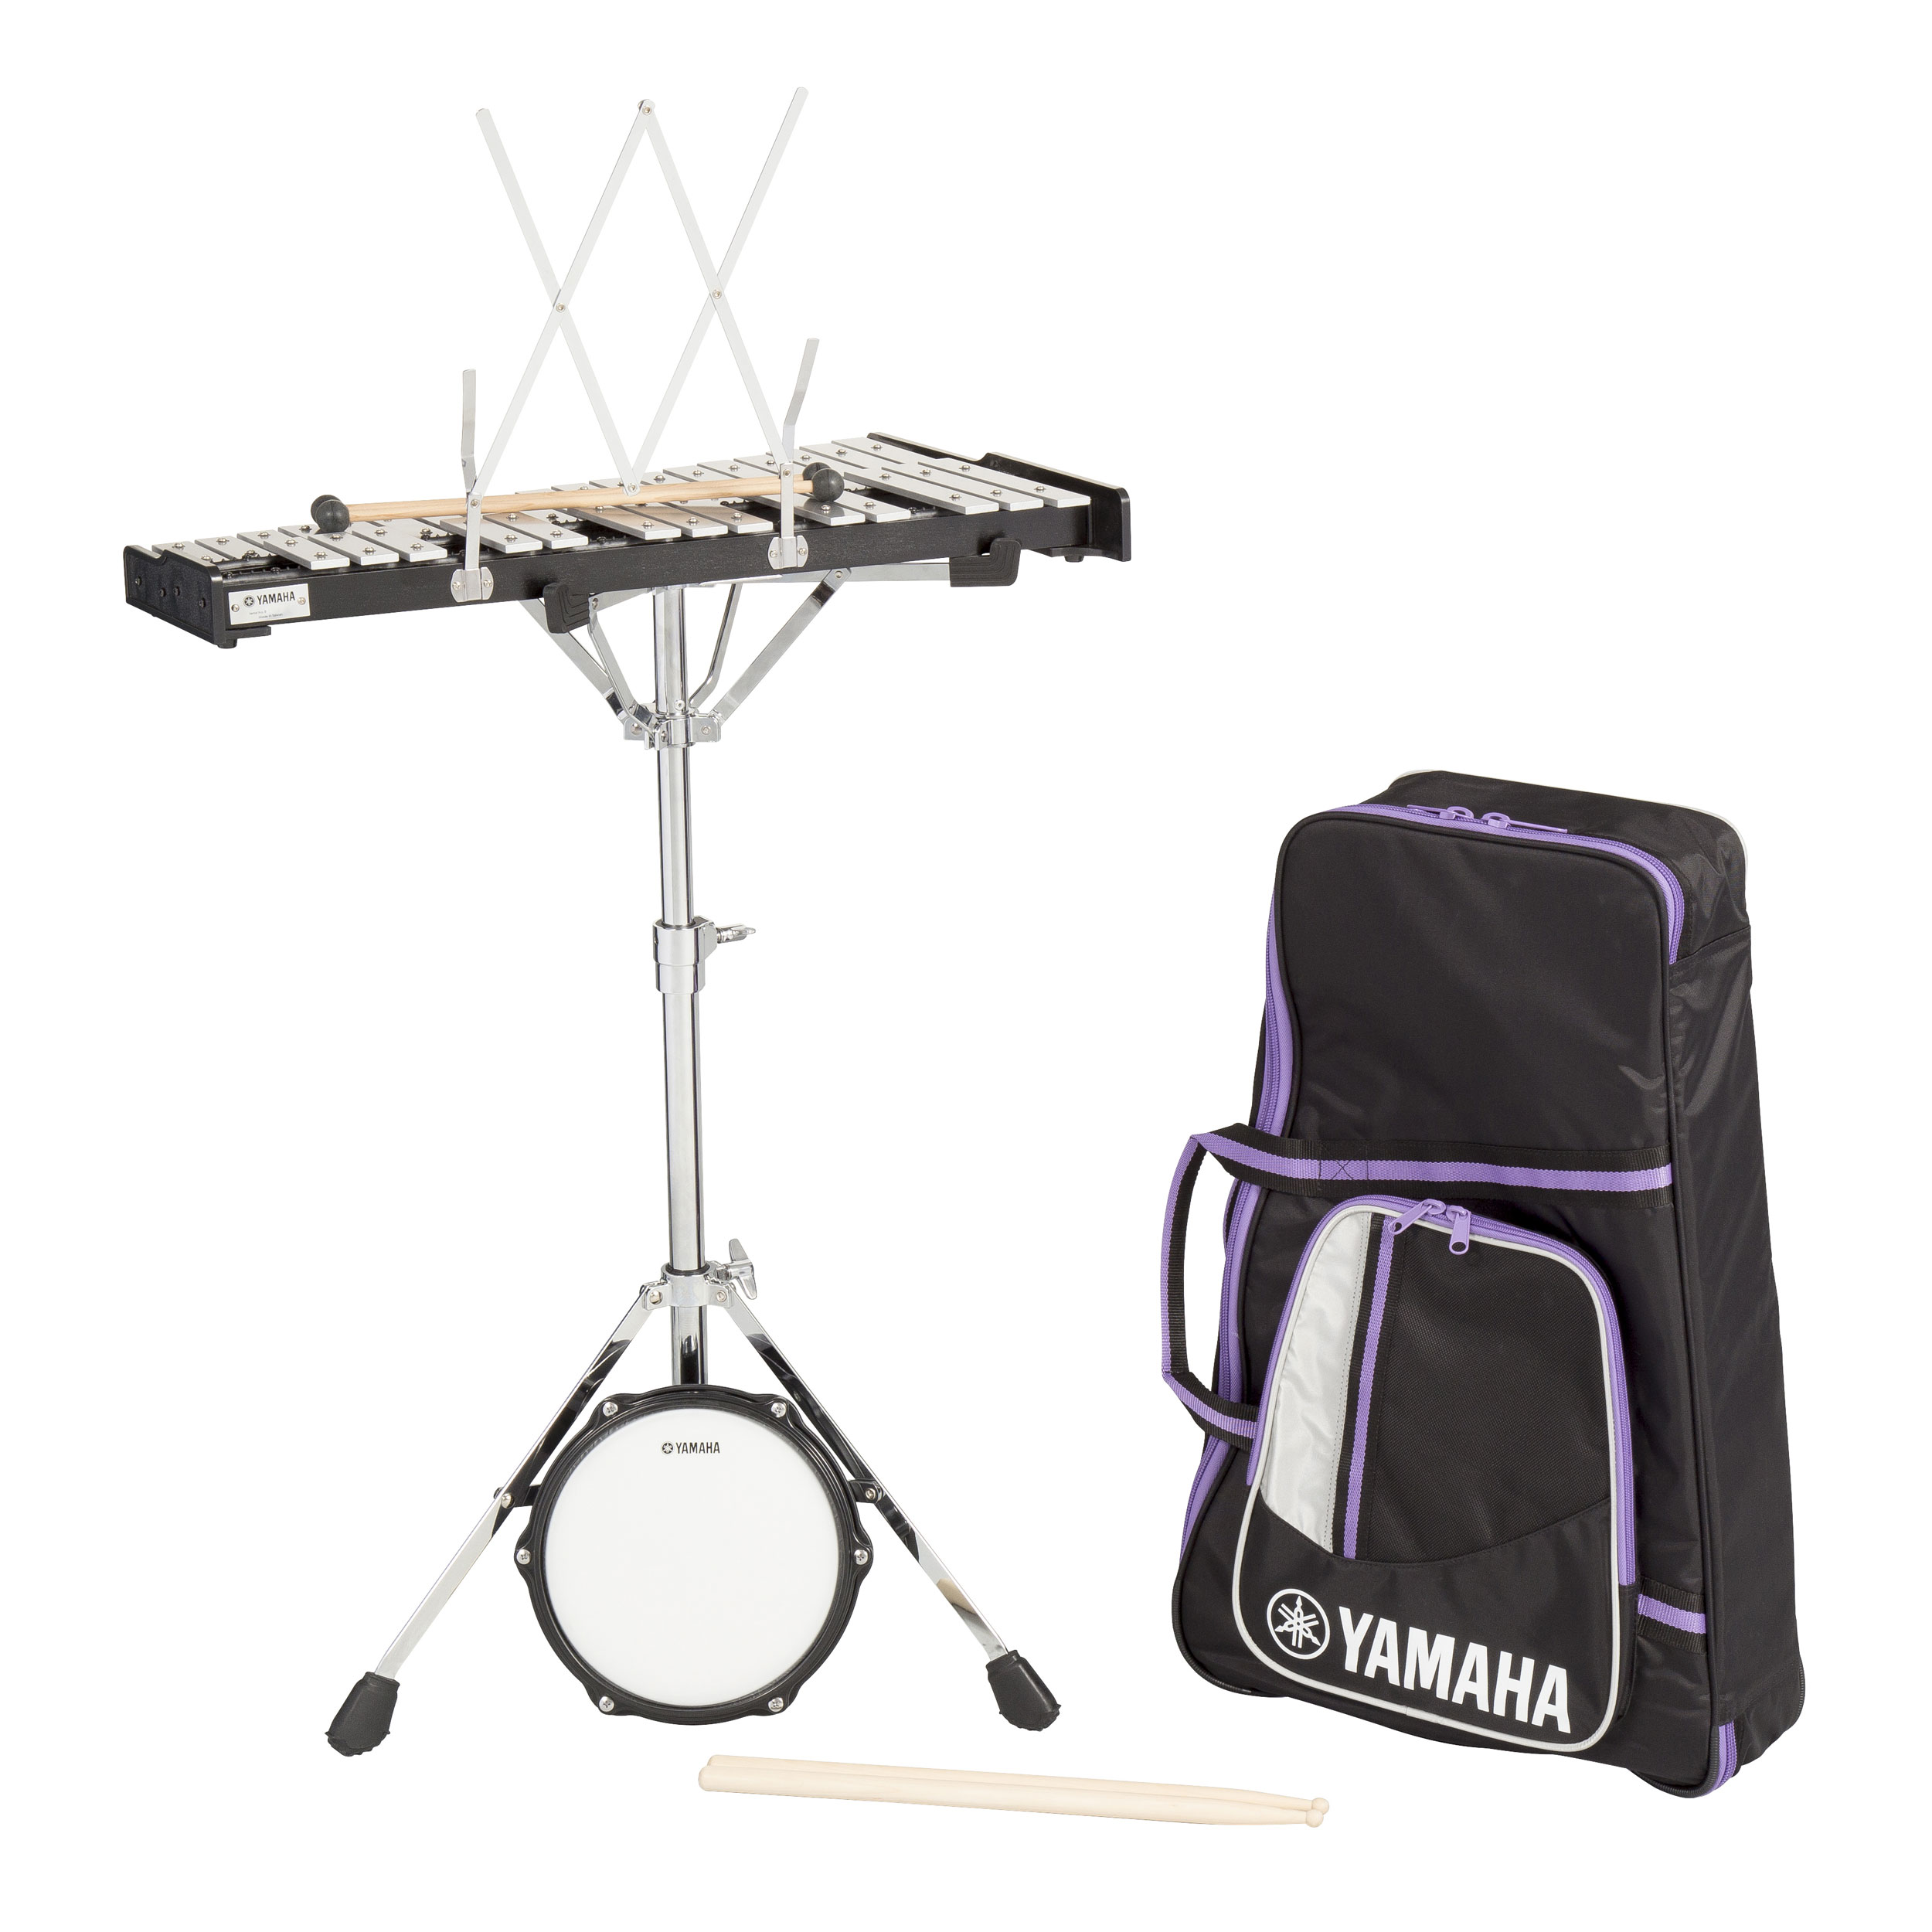 Percussion kit bell kits snare kits yamaha vic for Yamaha student bell kit with backpack and rolling cart